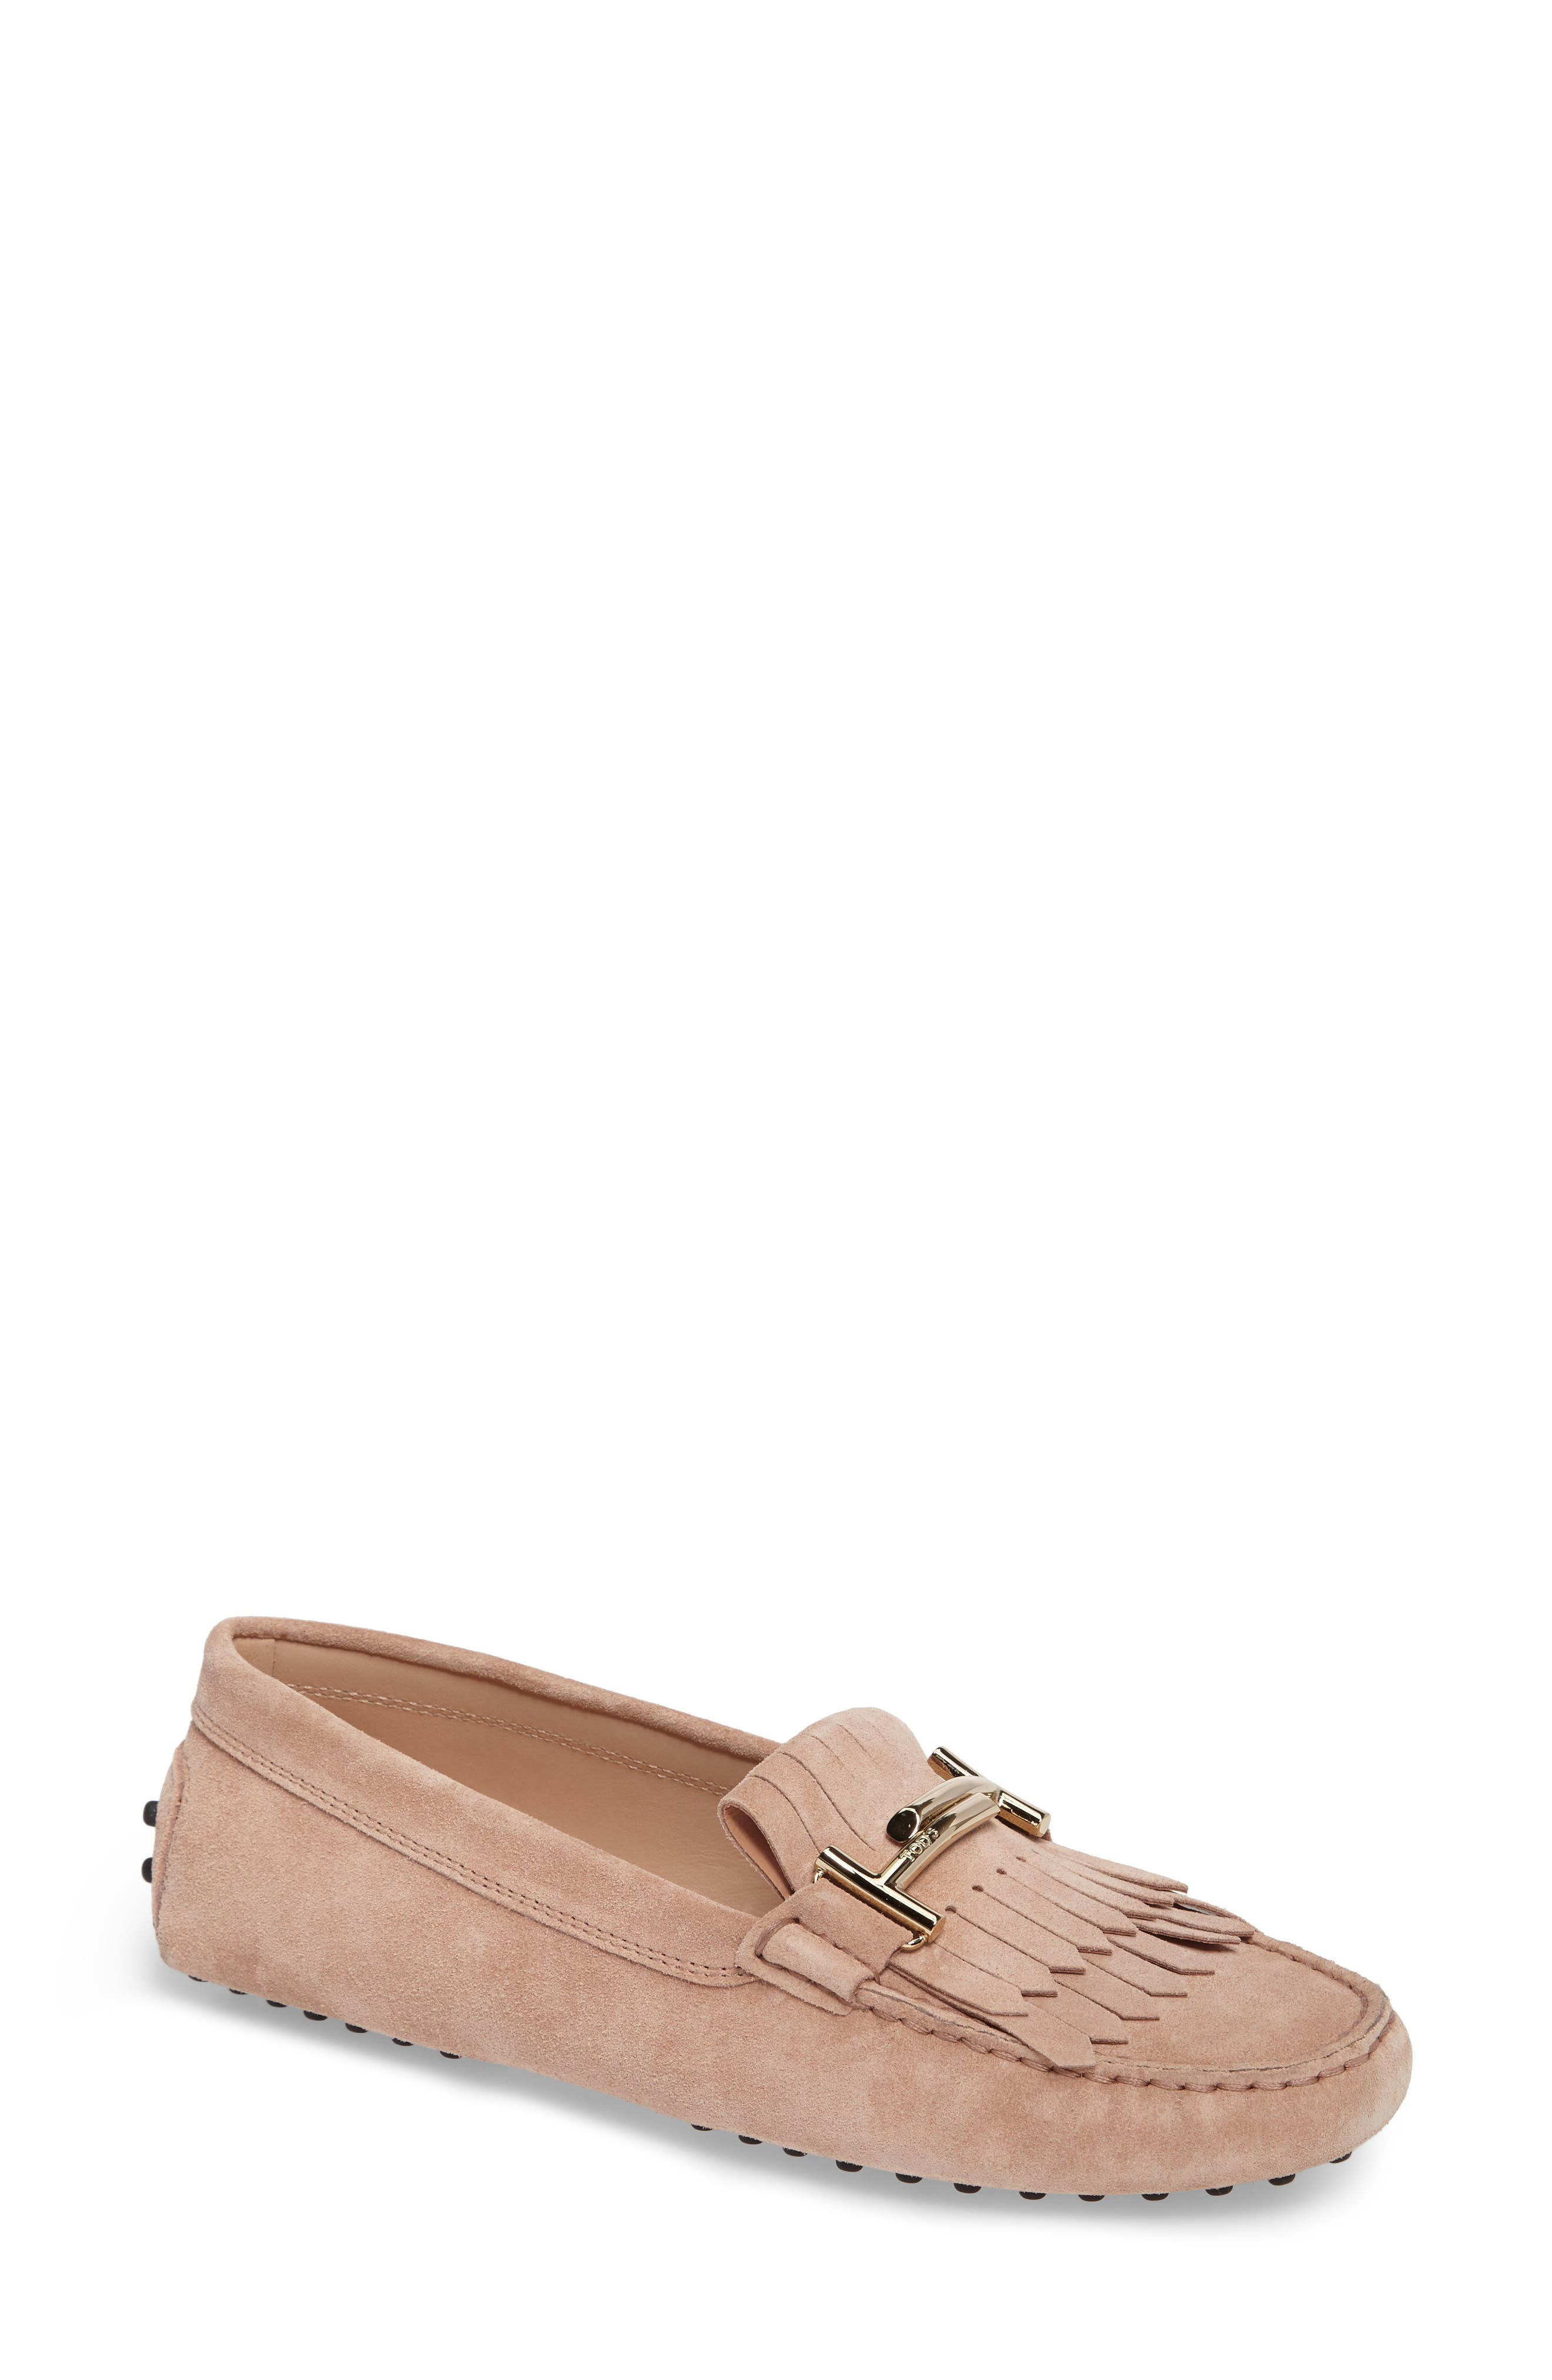 Double T Fringe Gommino Loafer,                         Main,                         color, 250